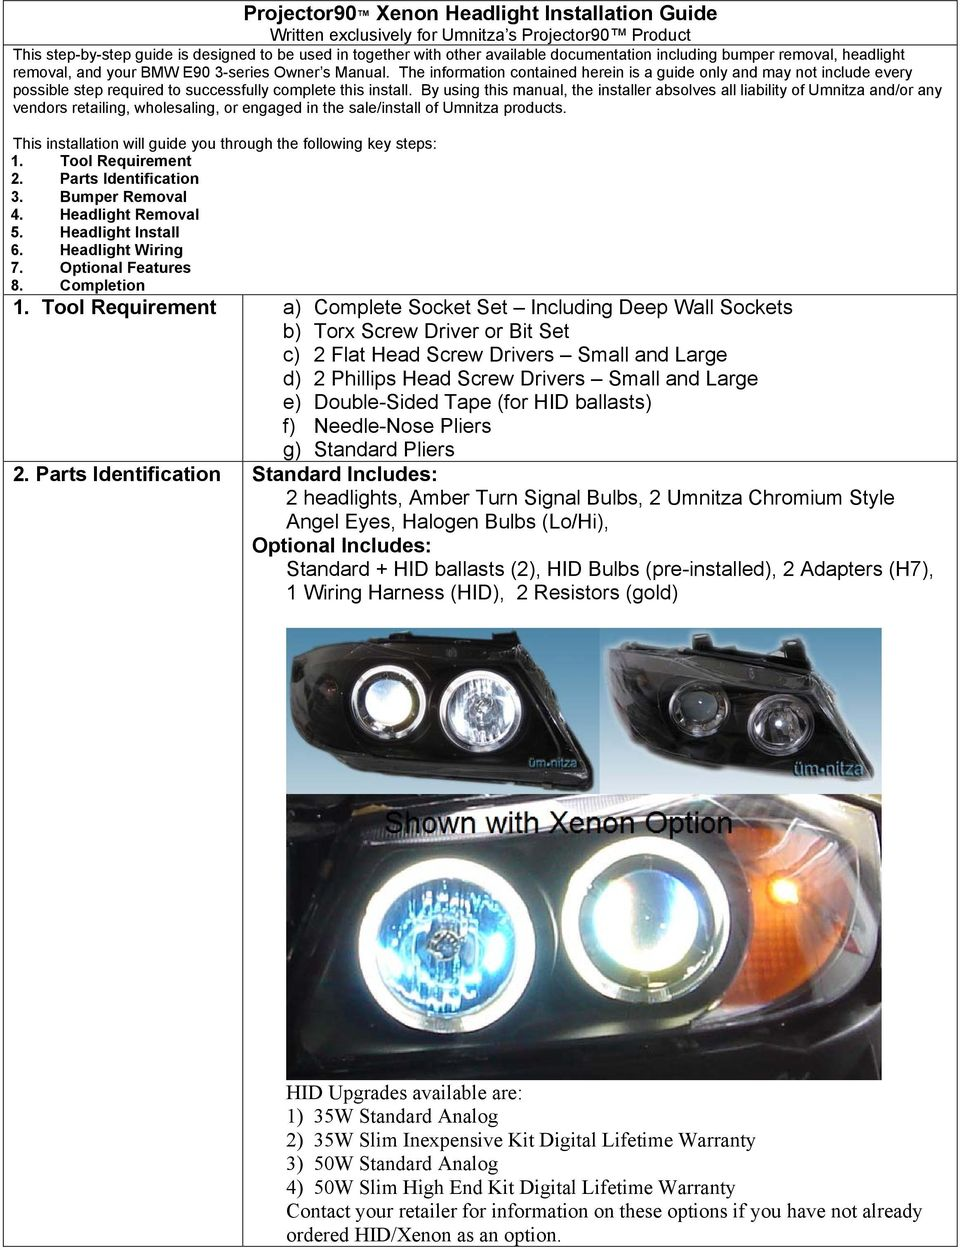 Projector90 Xenon Headlight Installation Guide Pdf Hid Conversion Kit Wiring Diagram The Information Contained Herein Is A Only And May Not Include Every Possible Step Required